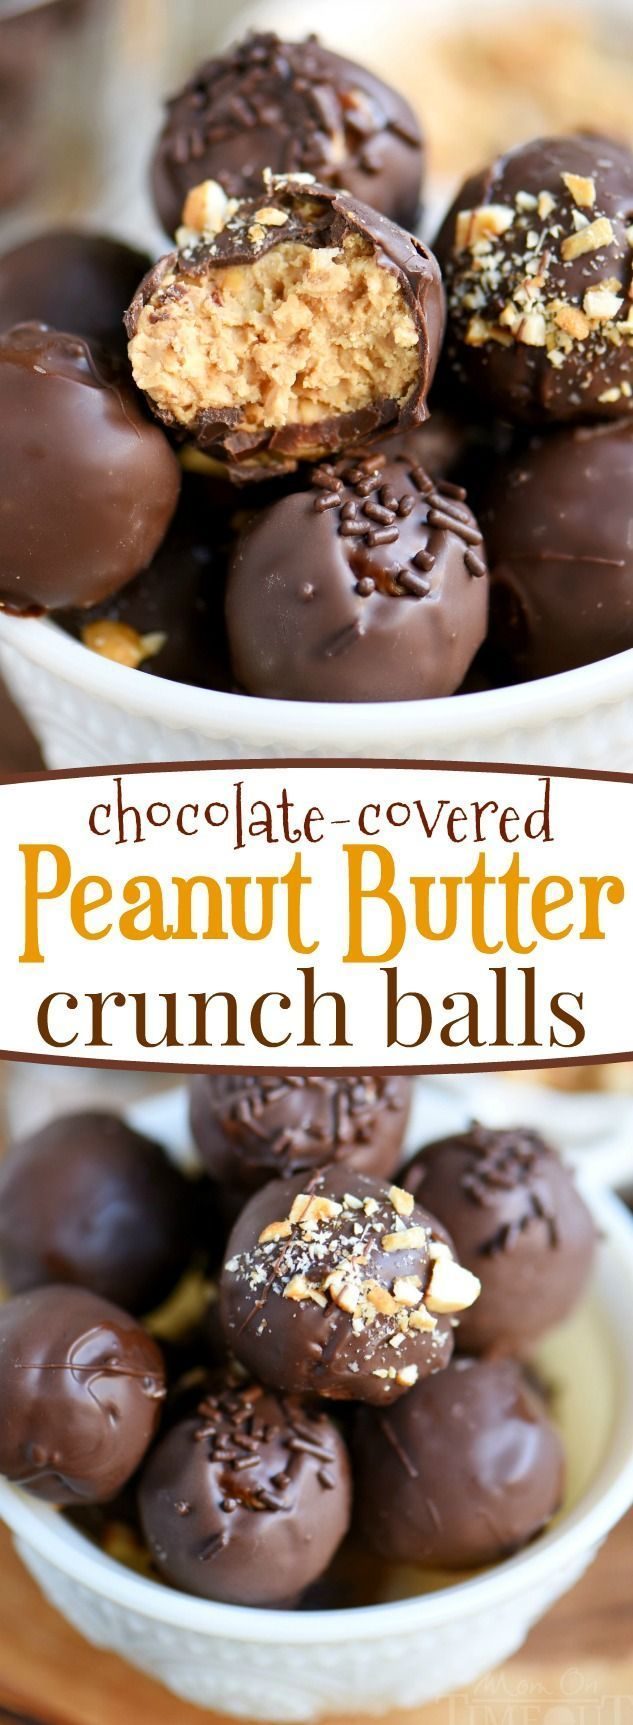 25+ best ideas about Cookie tray on Pinterest | Easy ...